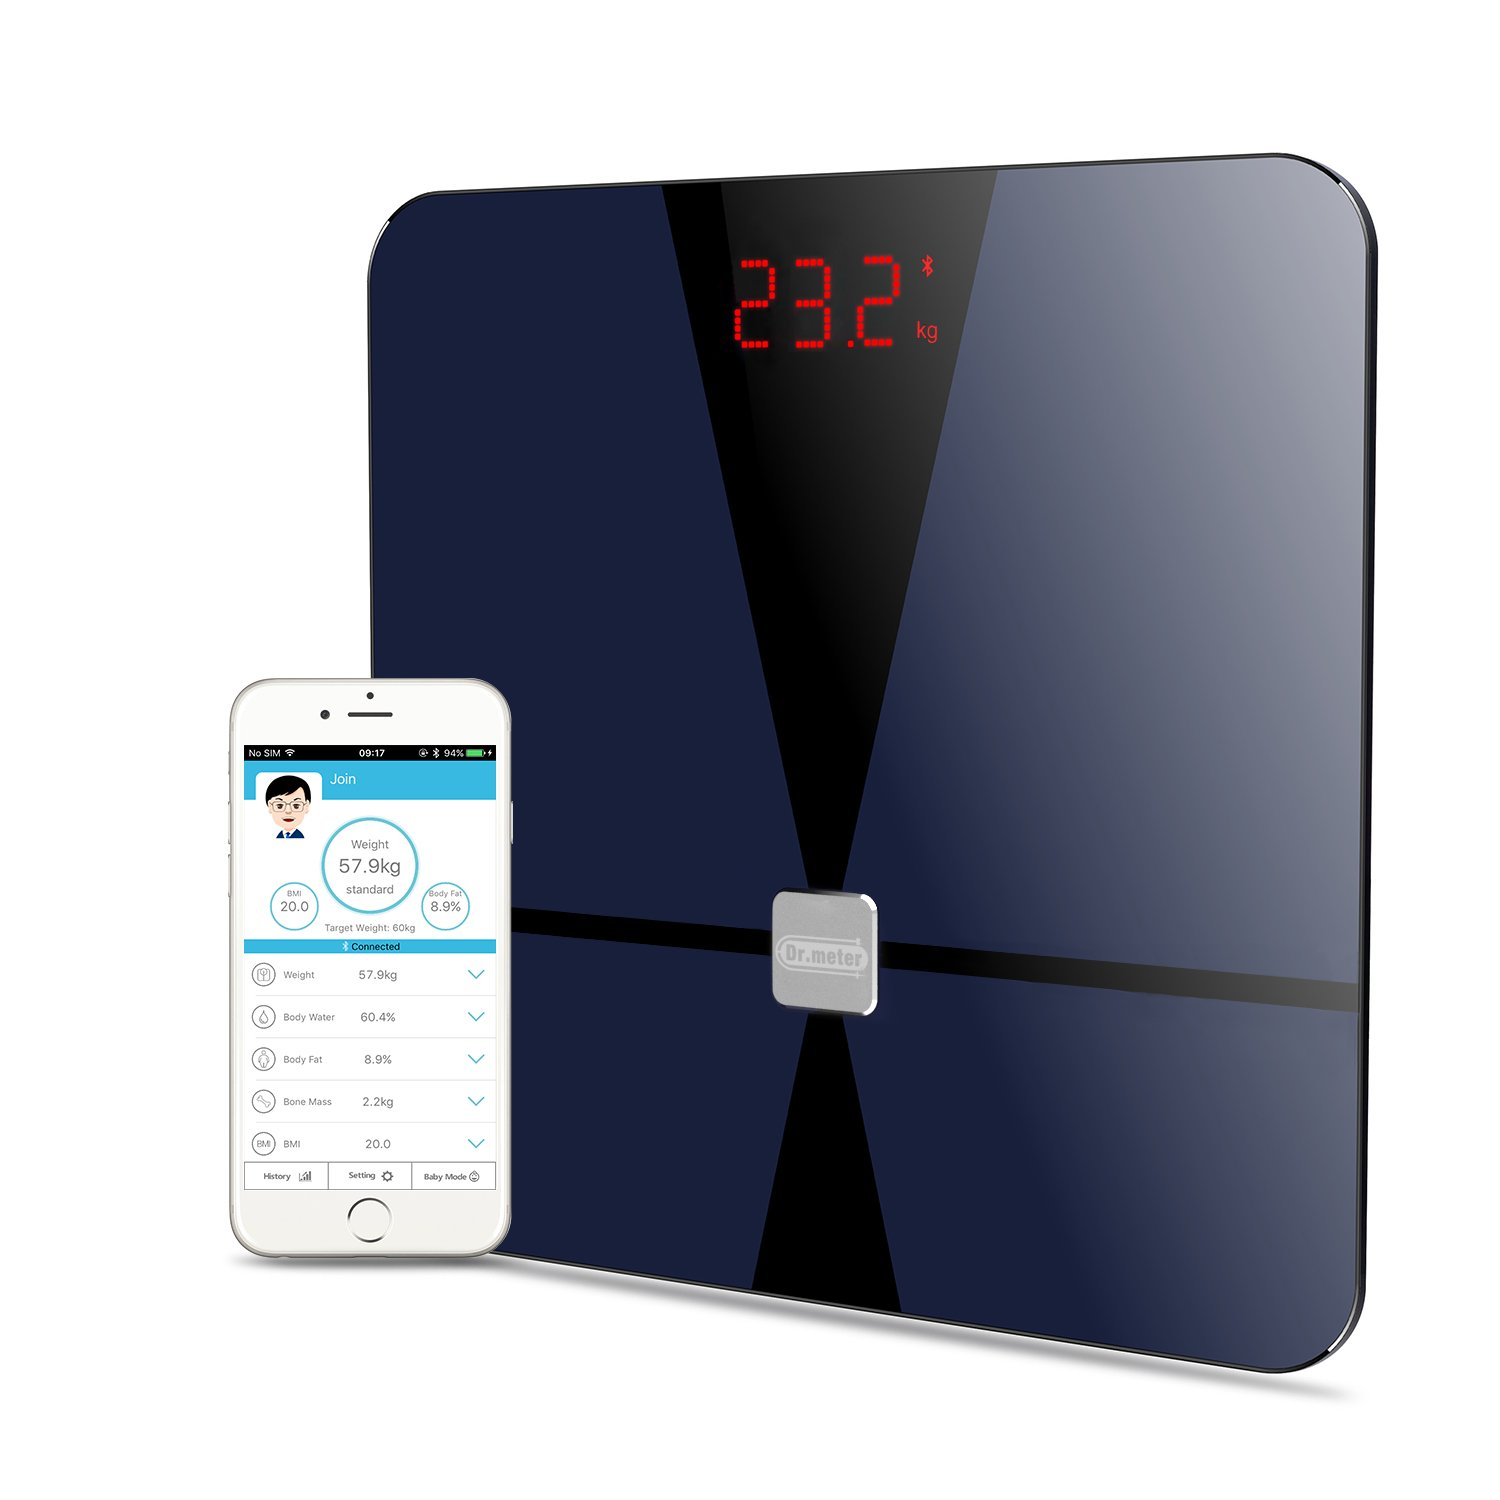 Bmi Digital Bluetooth Body Fat Scale, Dr.Meter Smart Bathroom Weight Scale Body Composition Analyzer Health Monitor with iOS and Android App, Sensitive ITO Conductive Tempered Glass Surface-Black